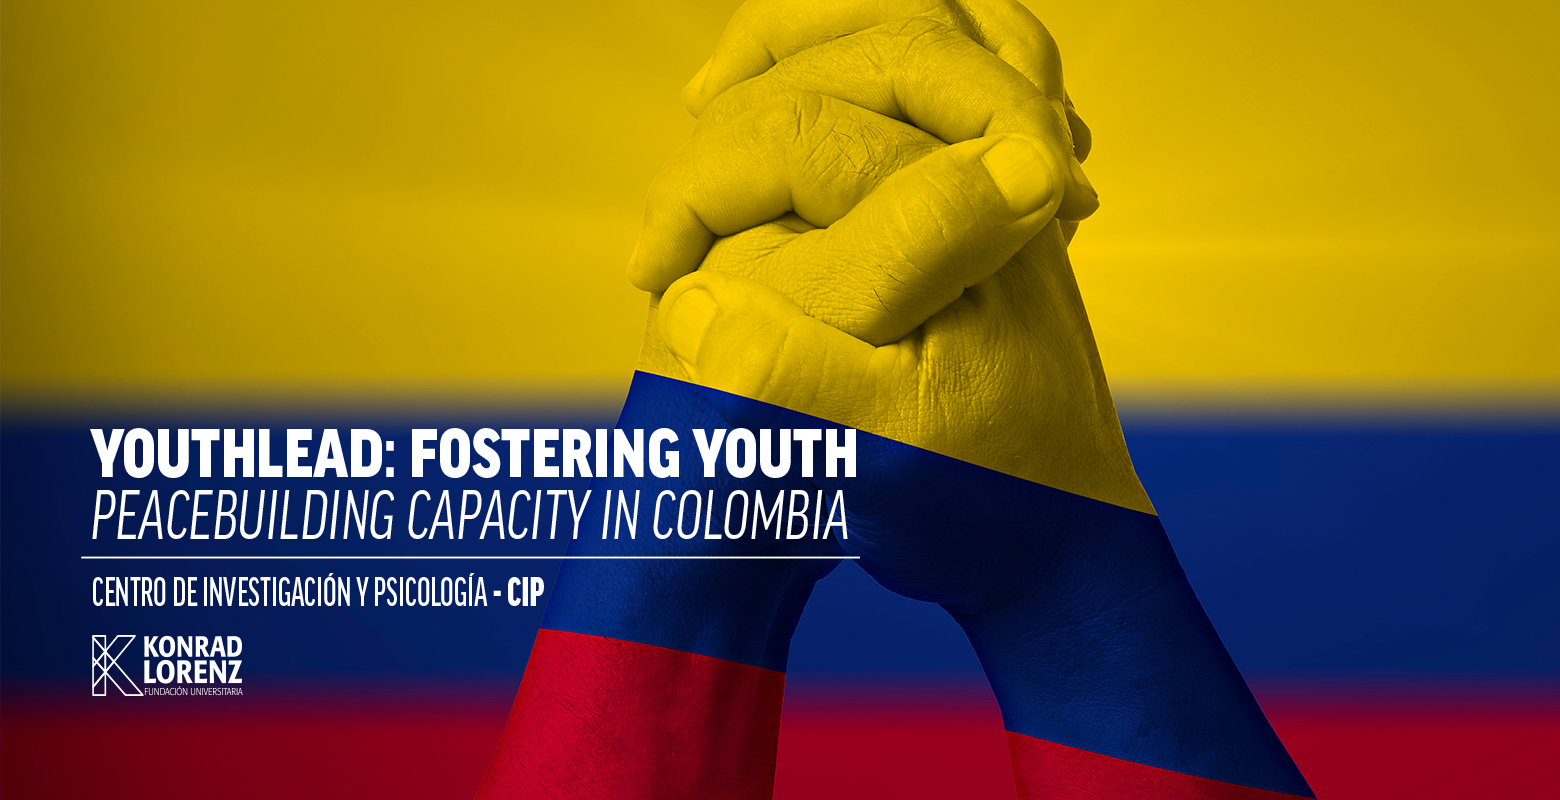 YouthLEAD: Fostering youth peacebuilding capacity in Colombia